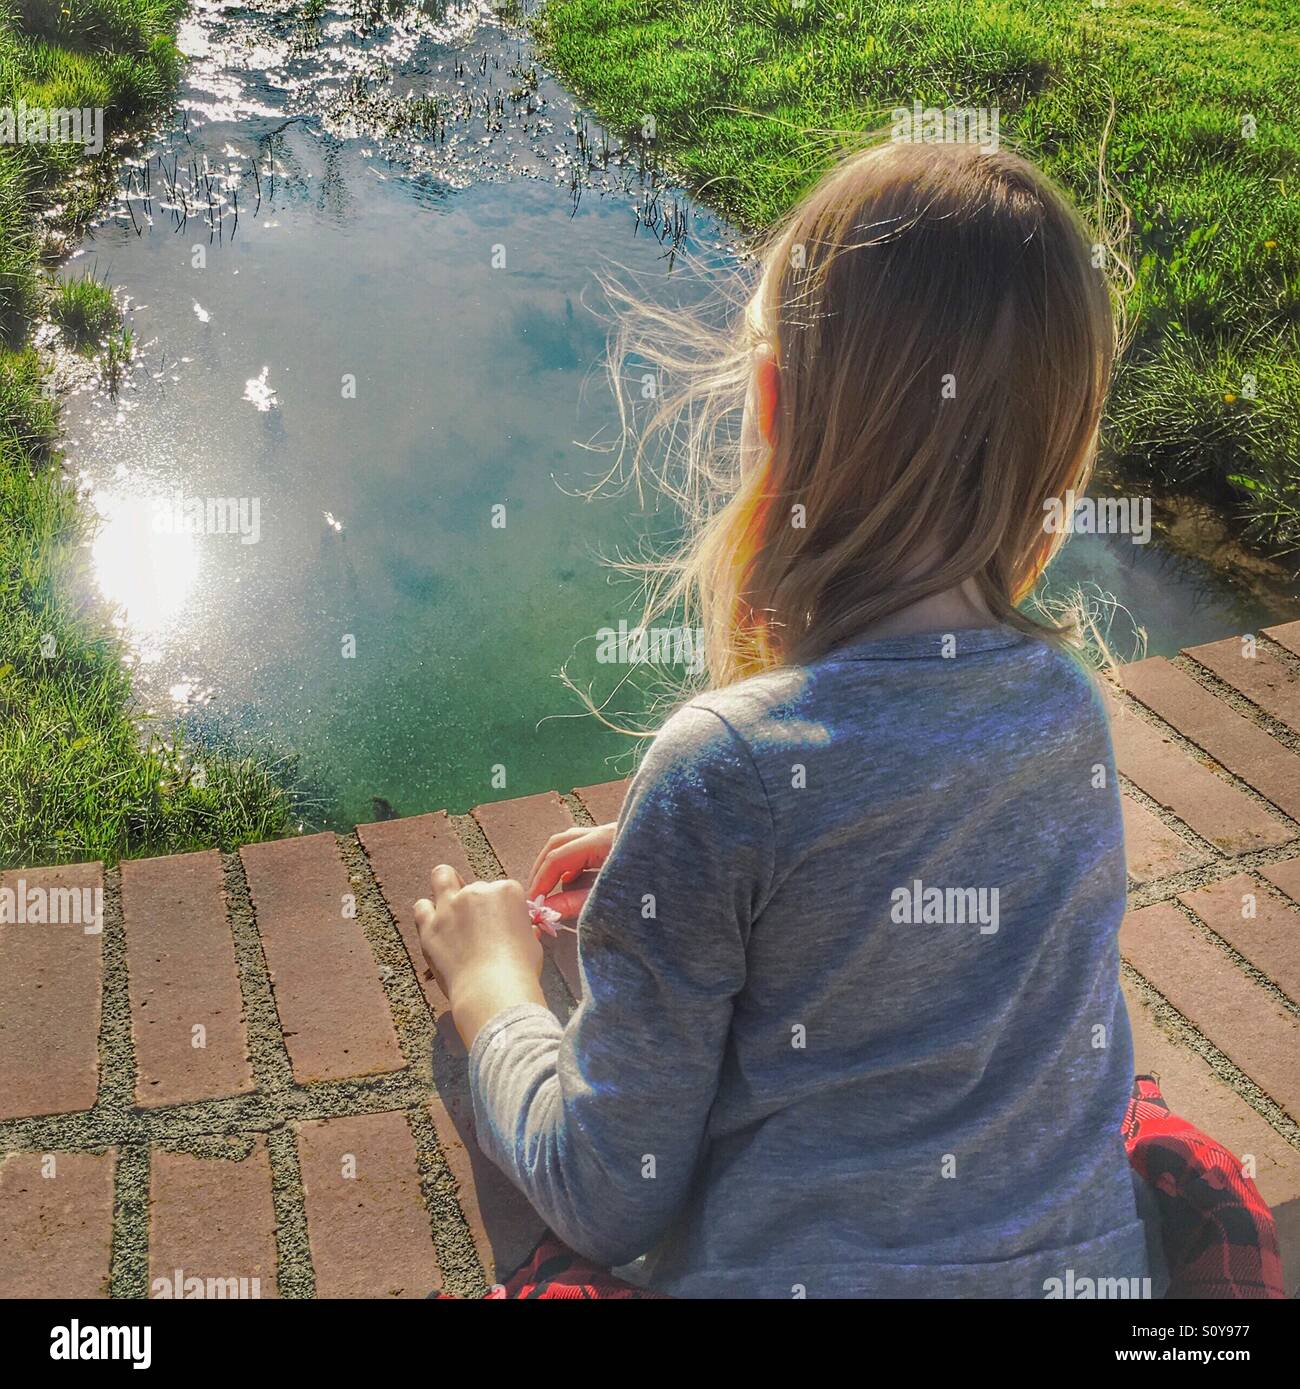 A girl dreaming by a stream. - Stock Image